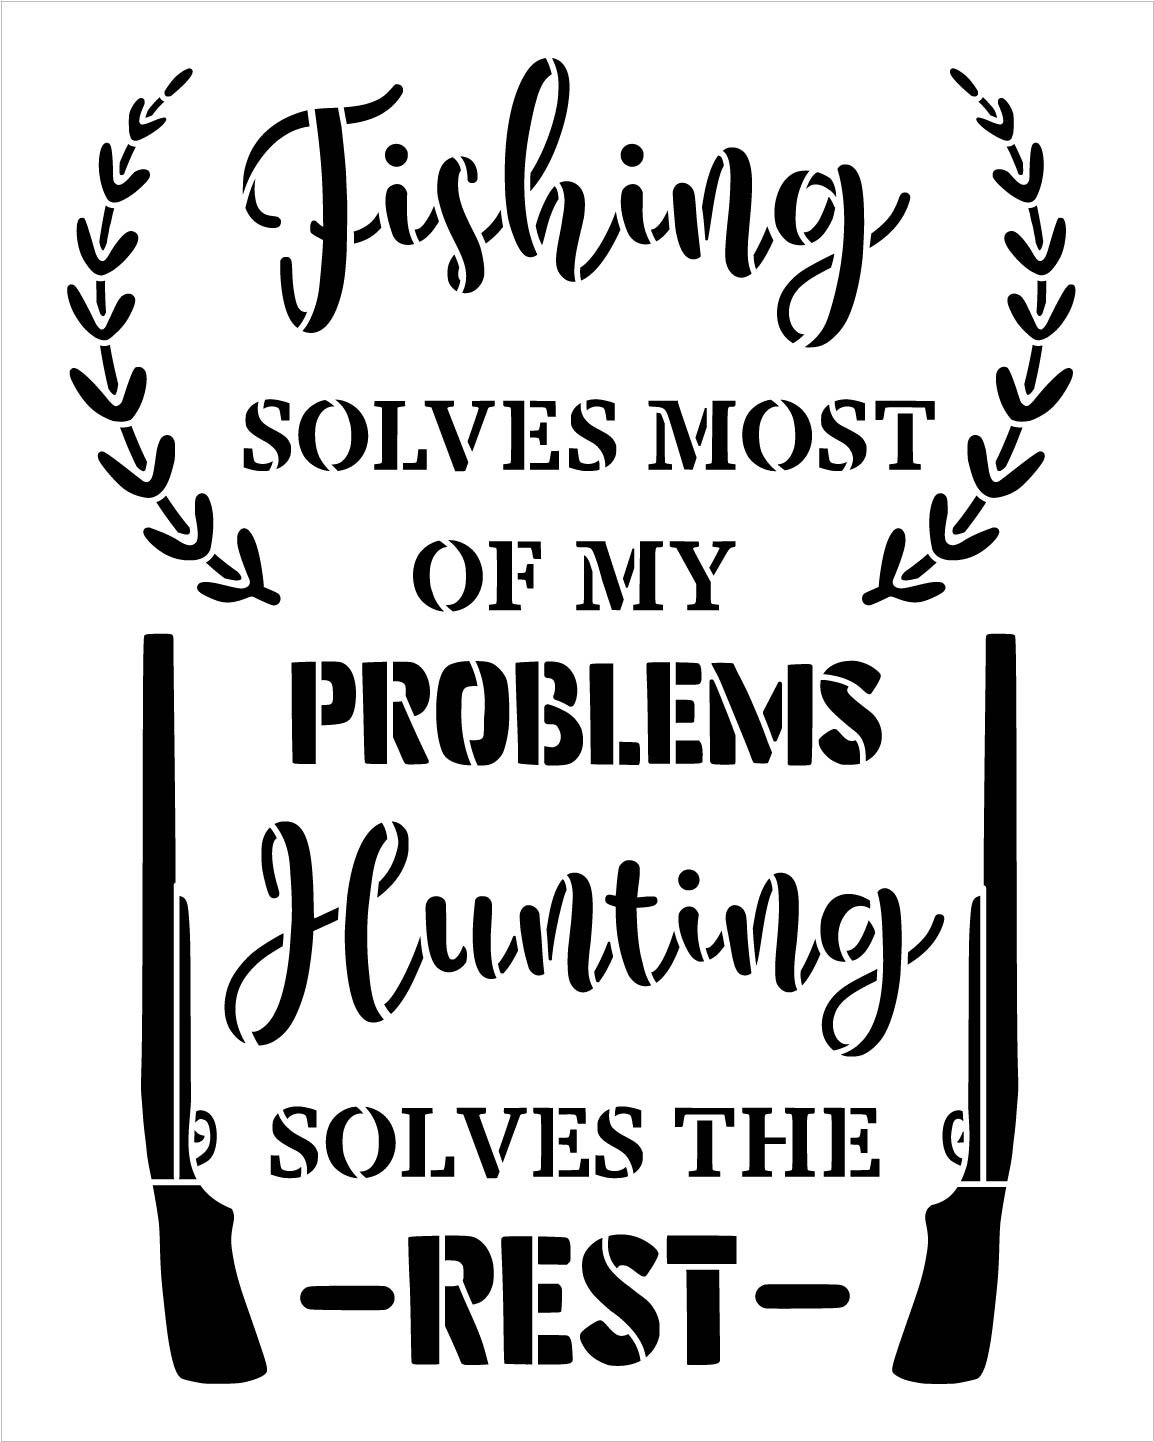 Fishing Solves Most Problems - Hunting Stencil by StudioR12 | DIY Home Decor Gift | Craft & Paint Wood Sign | Reusable Mylar Template | Select Size